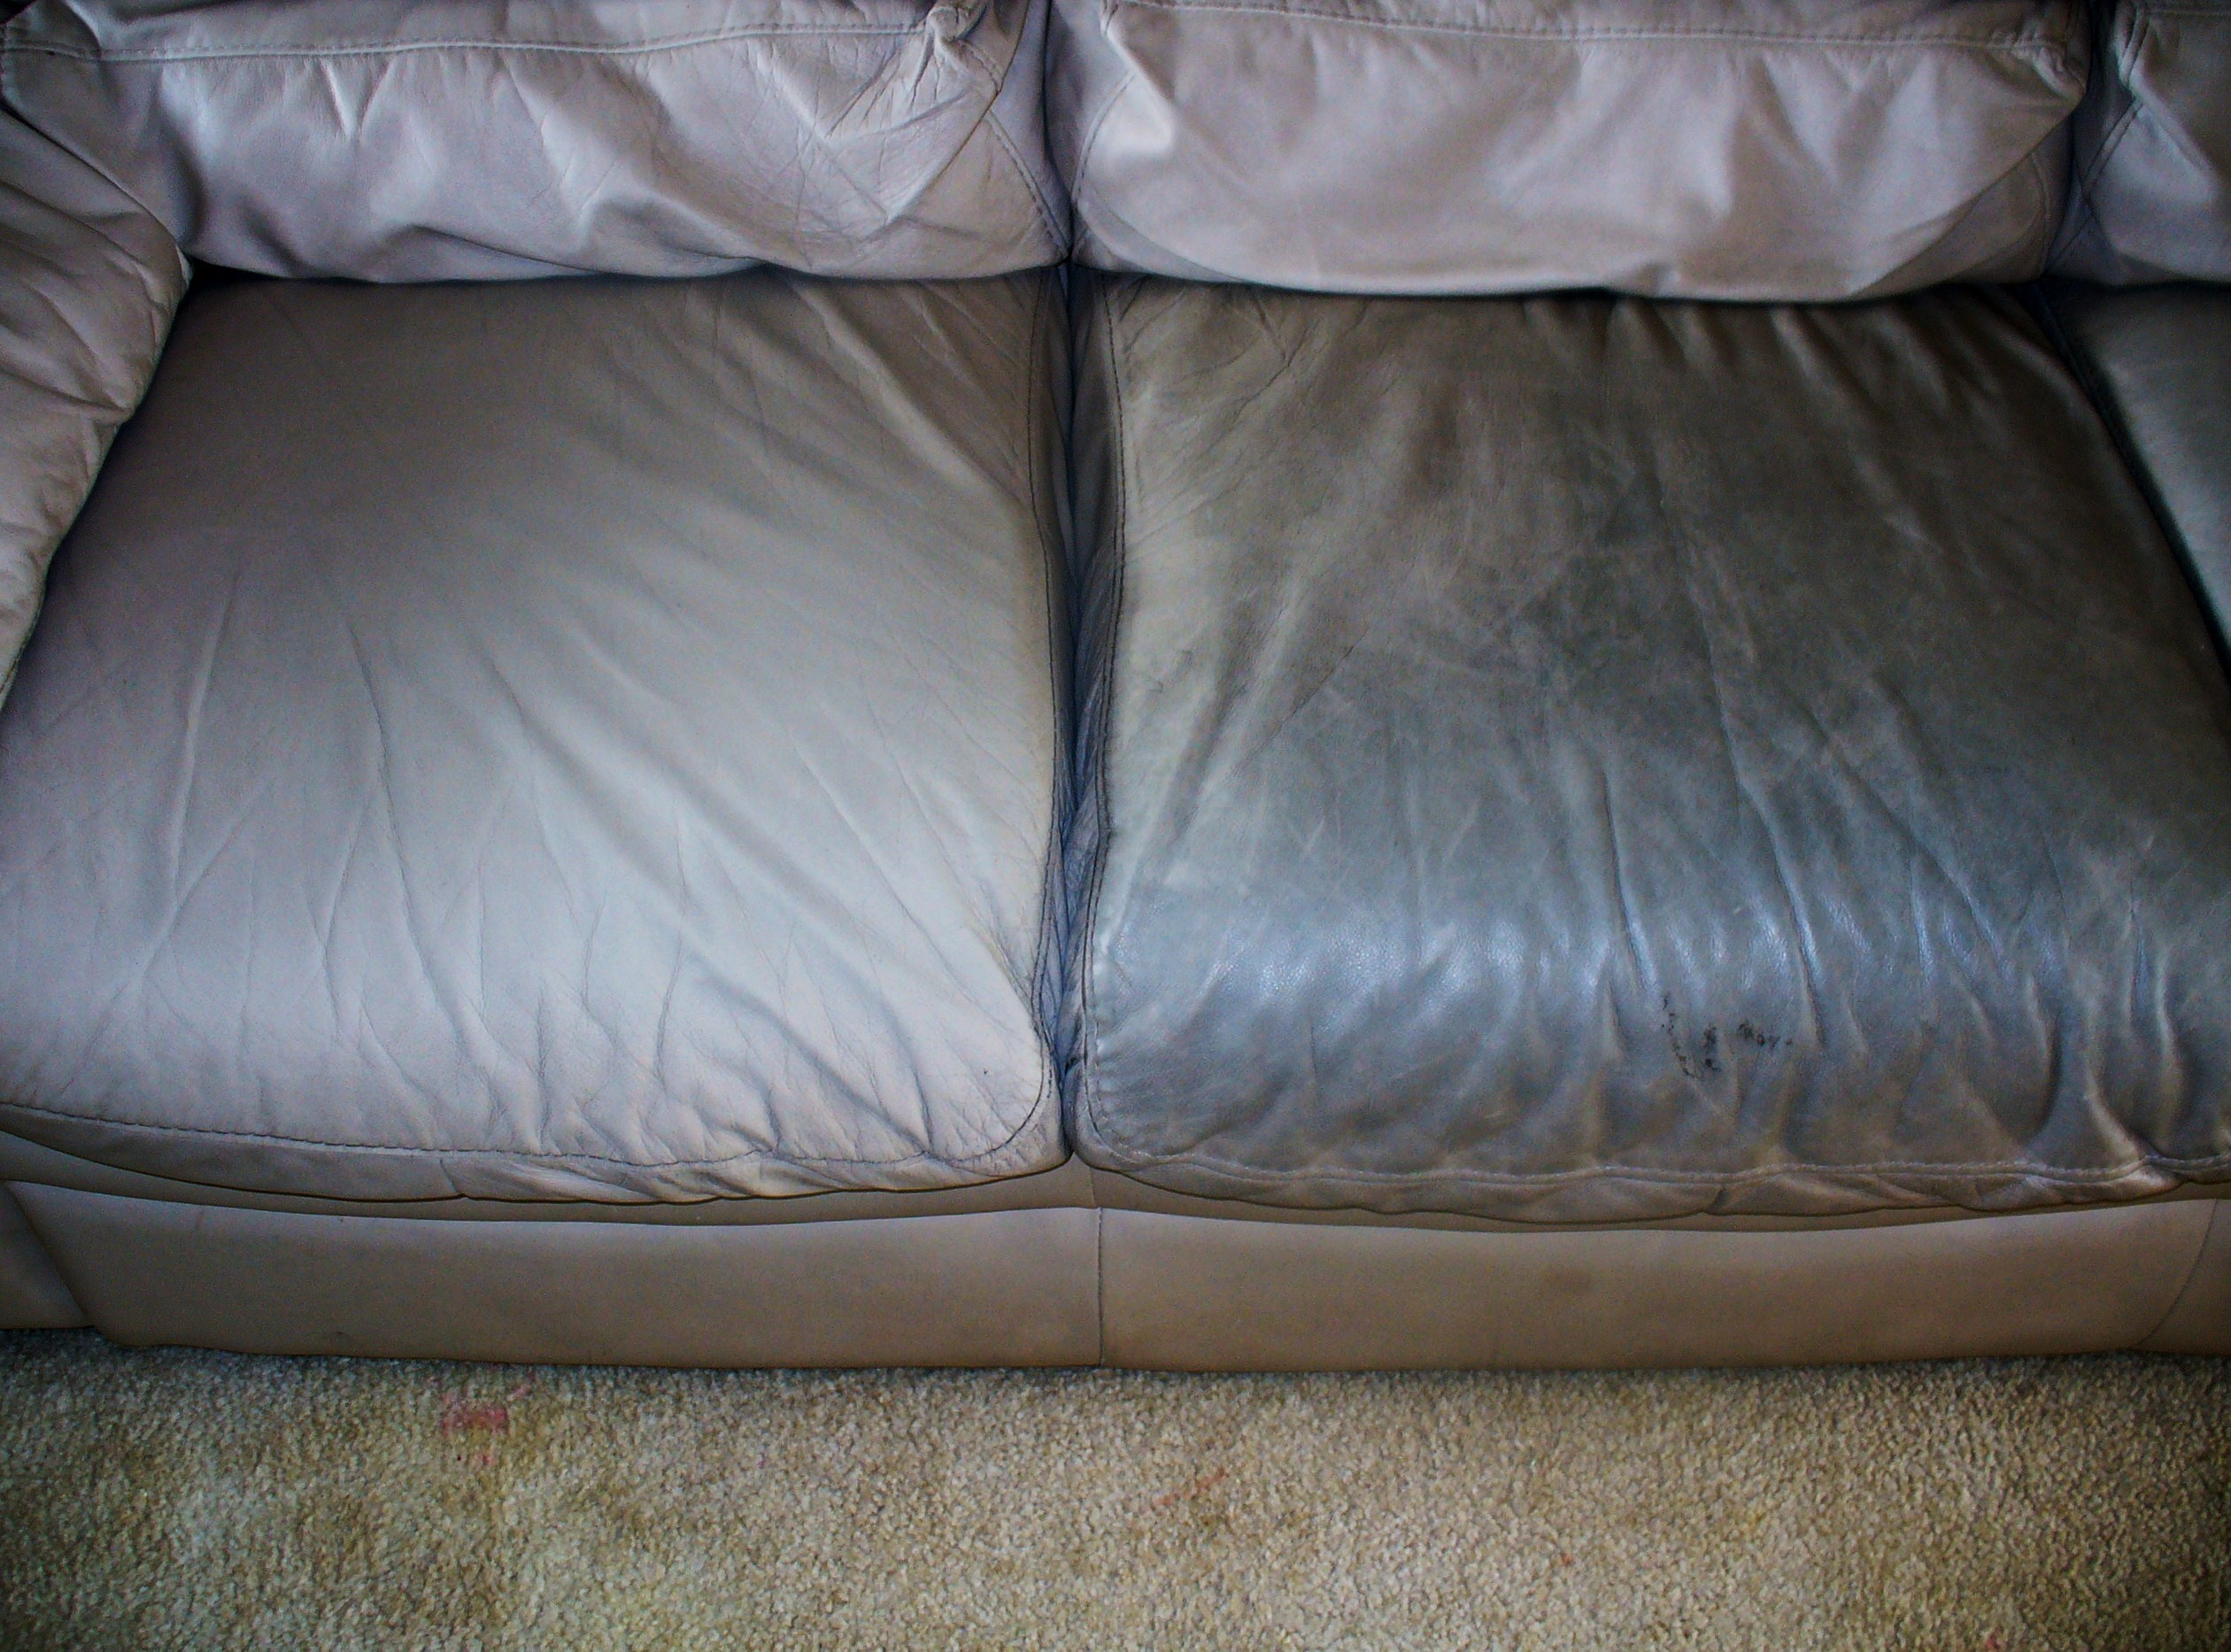 Leather Cleaning Dyeing Repair Kennewick Richland Pasco Wa